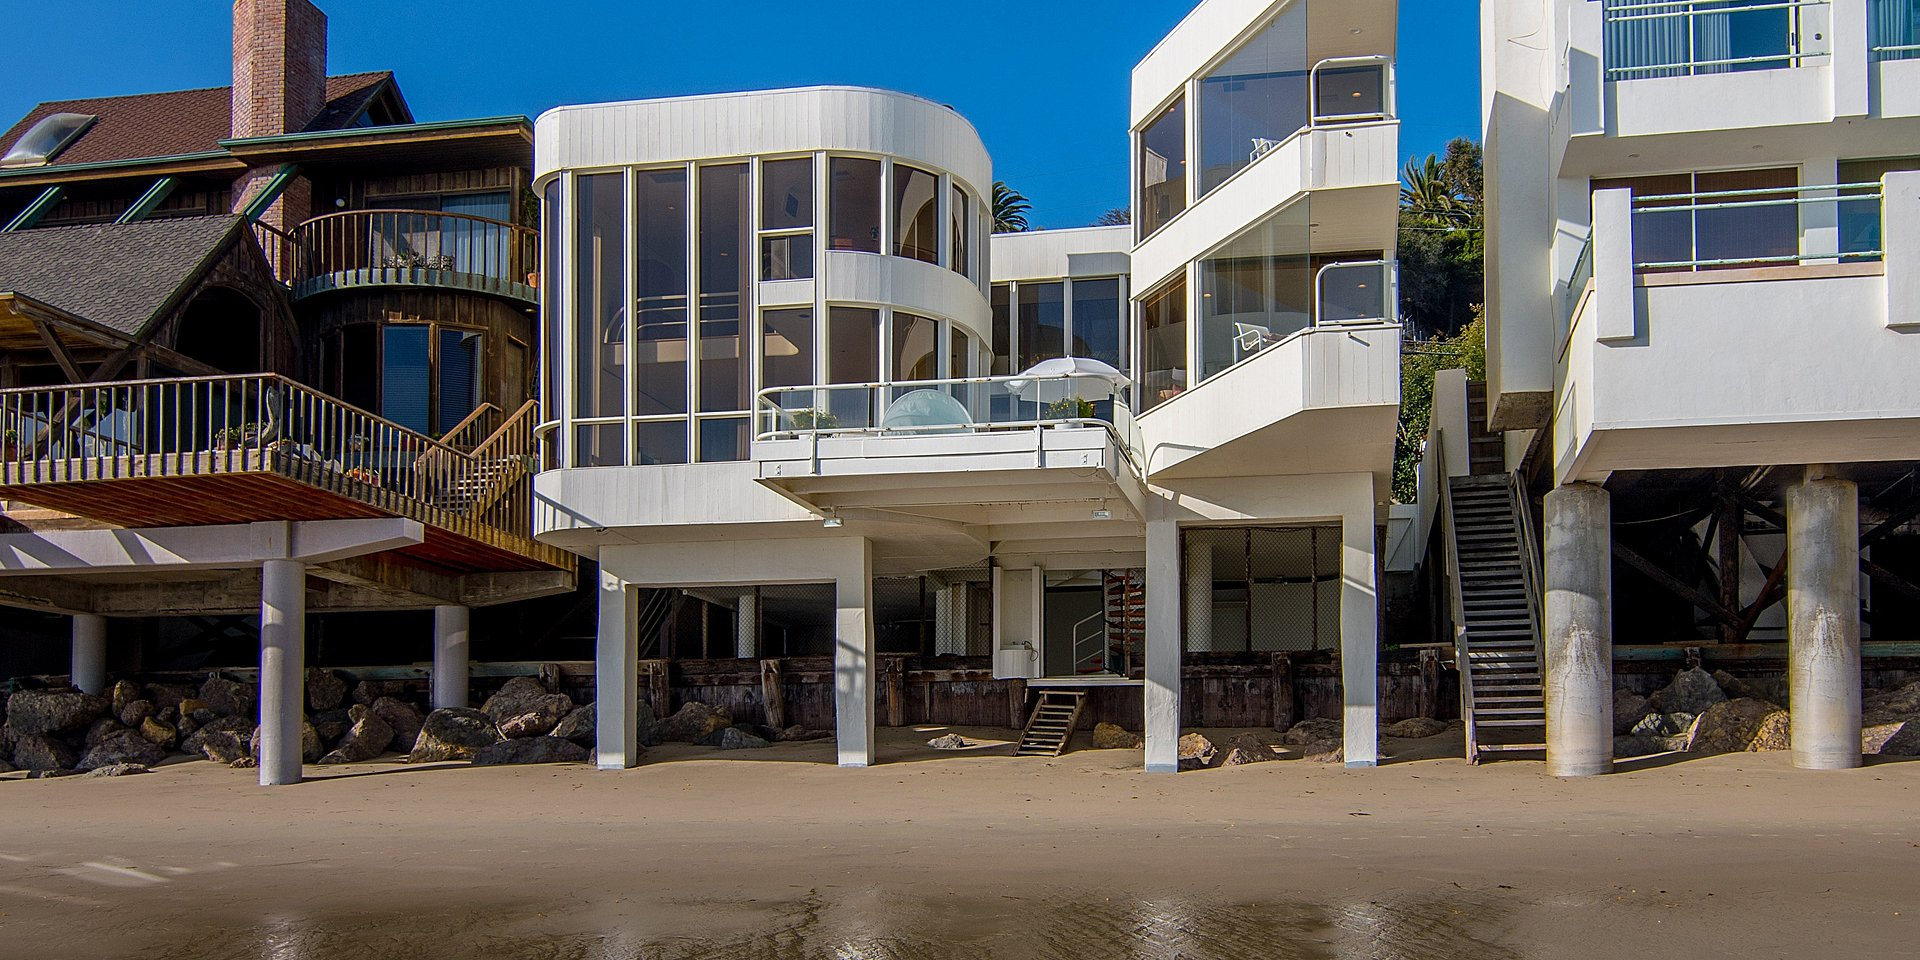 Coldwell Banker Residential Brokerage Lists Beachfront Malibu Property for $8.495 Million